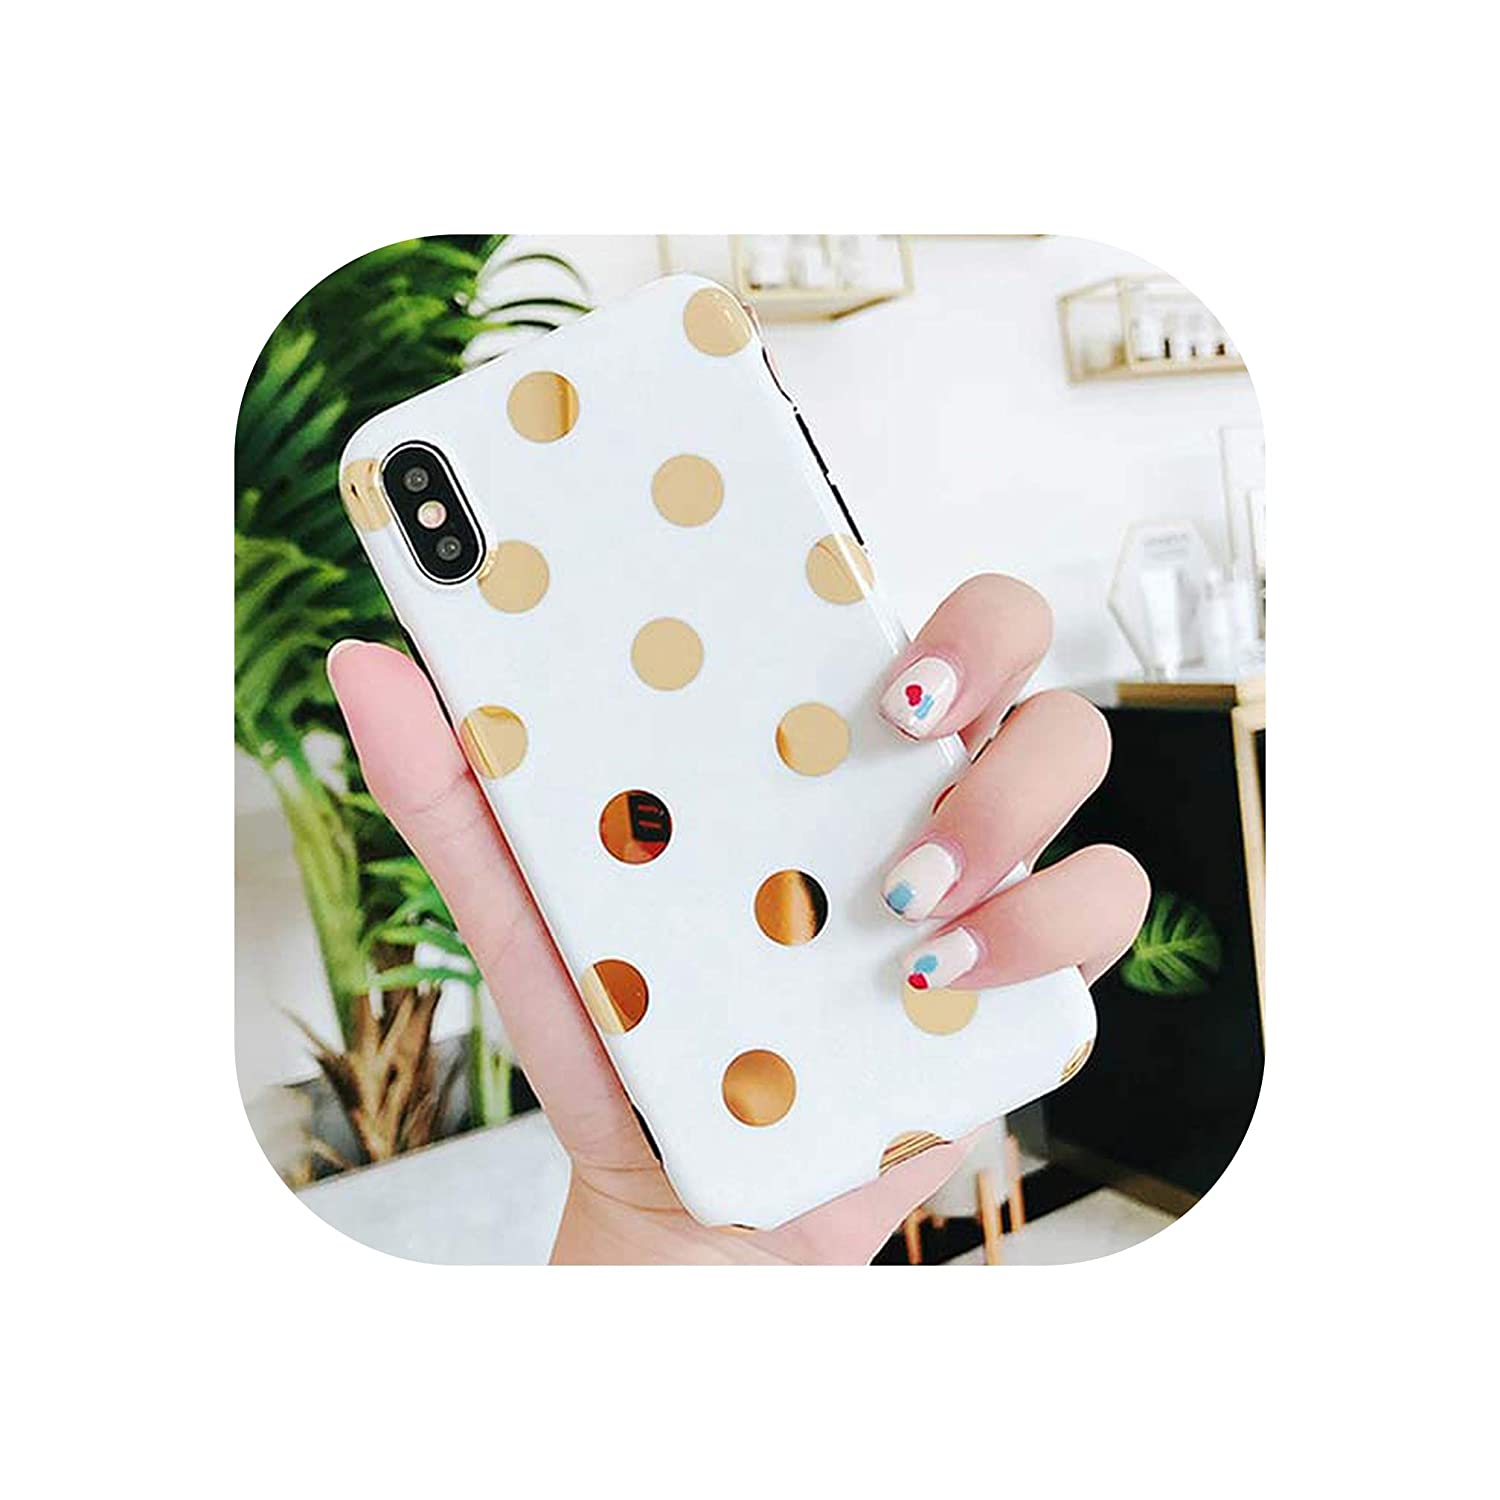 U-See Phone Case for iPhone 6 6S 7 8 Plus X XS Gold Plating Wave Point Soft Protective Phone Back Cover Cases Gift,for iPhone 8 Plus,White